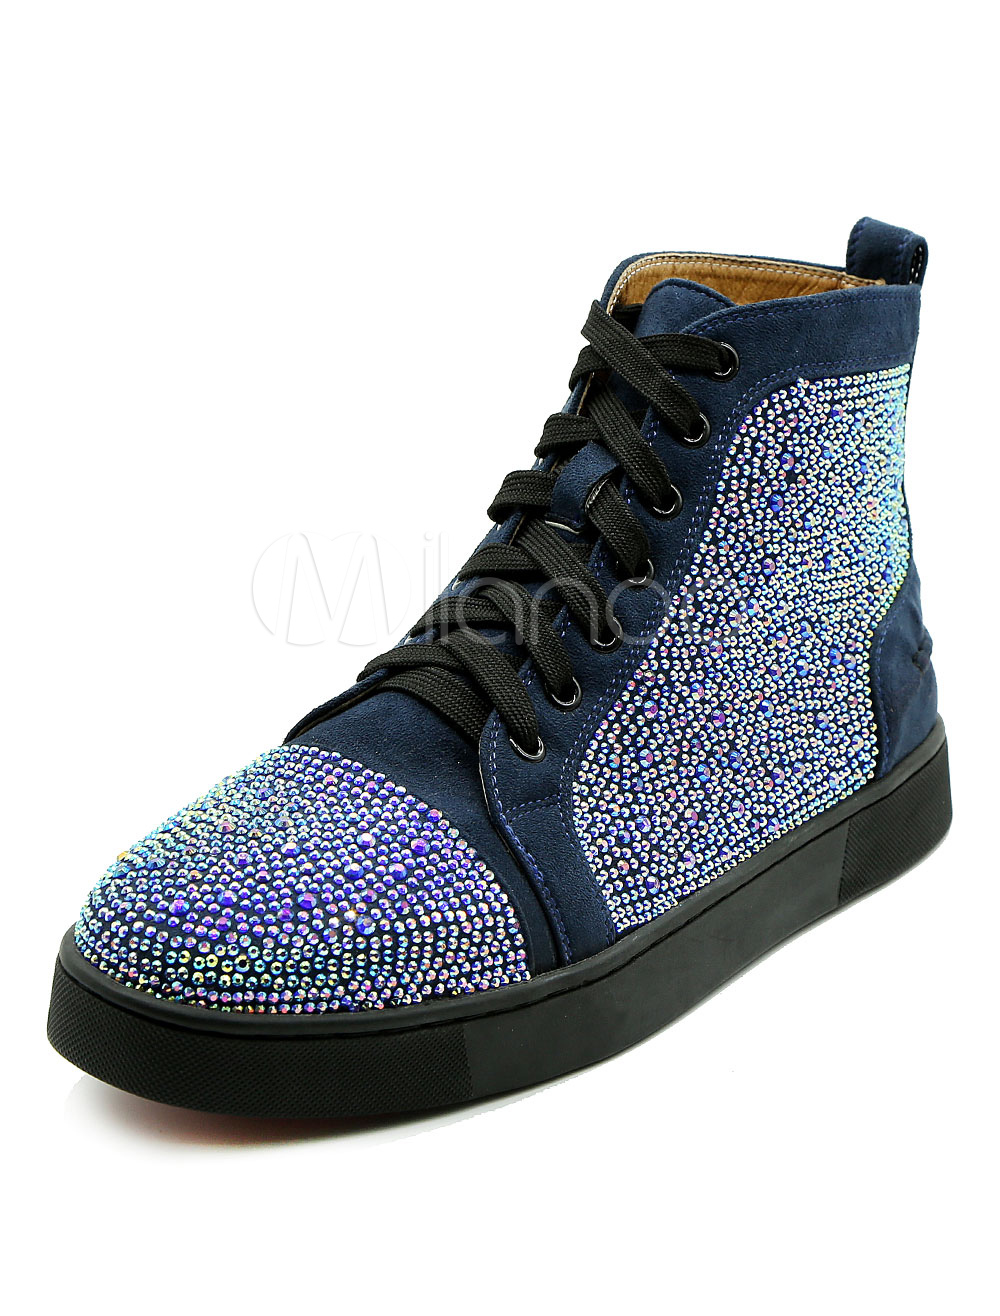 Buy Deep Blue Sneakers Round Toe Flat Rhinestones Lace Up Suede Men's Skate Shoes for $94.99 in Milanoo store